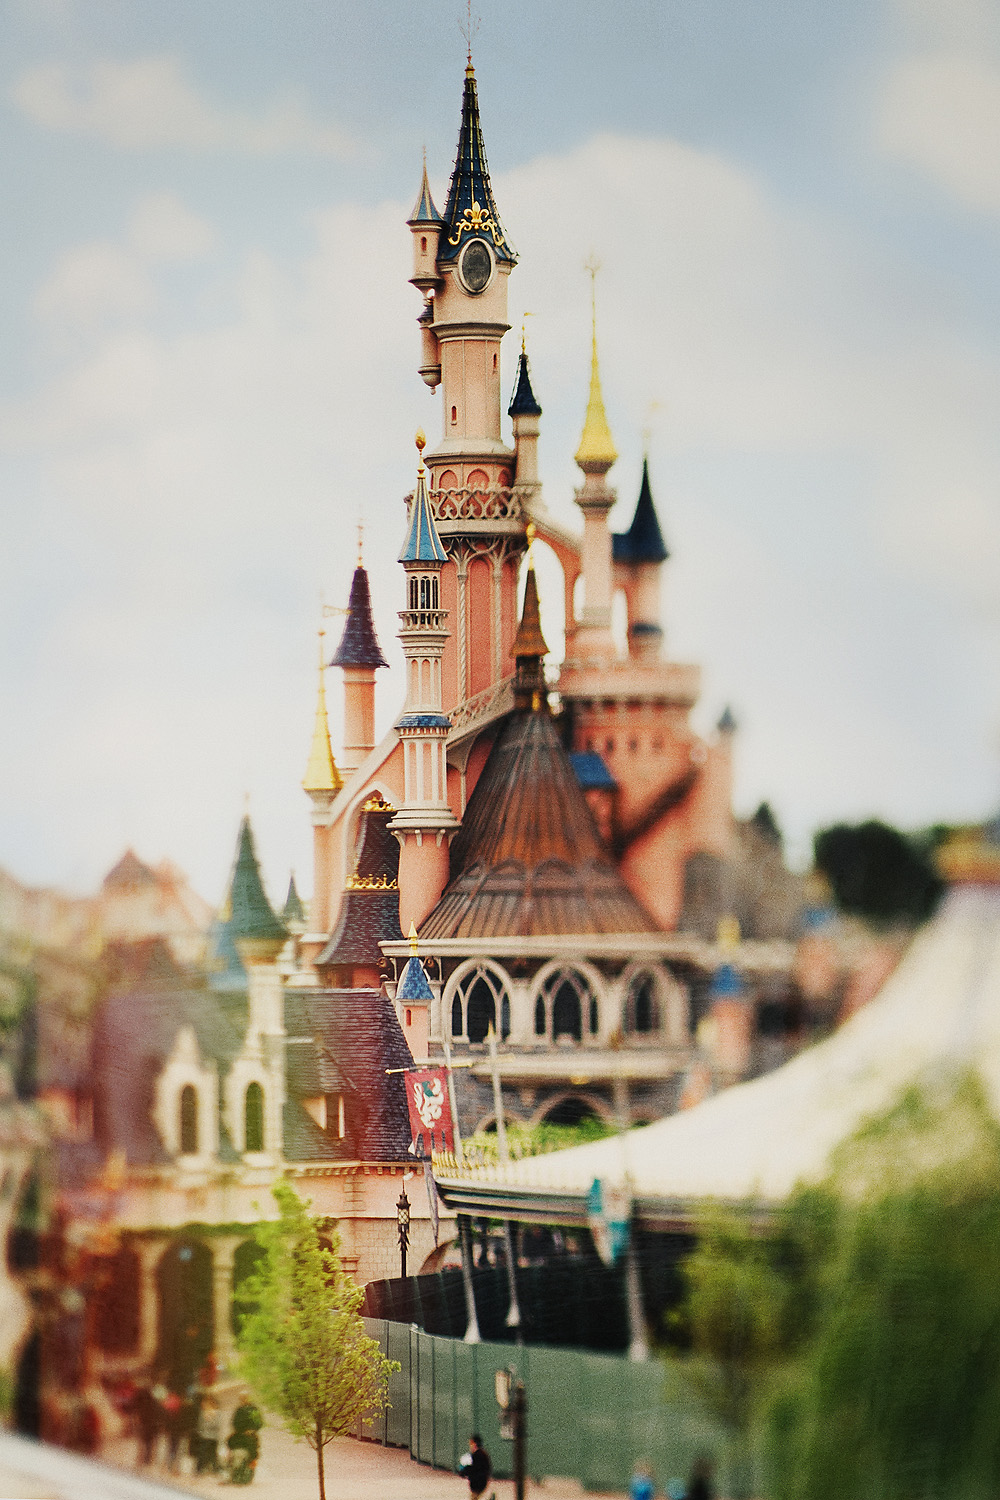 Lensbaby Edge 80 image of Disneyland in Paris in France